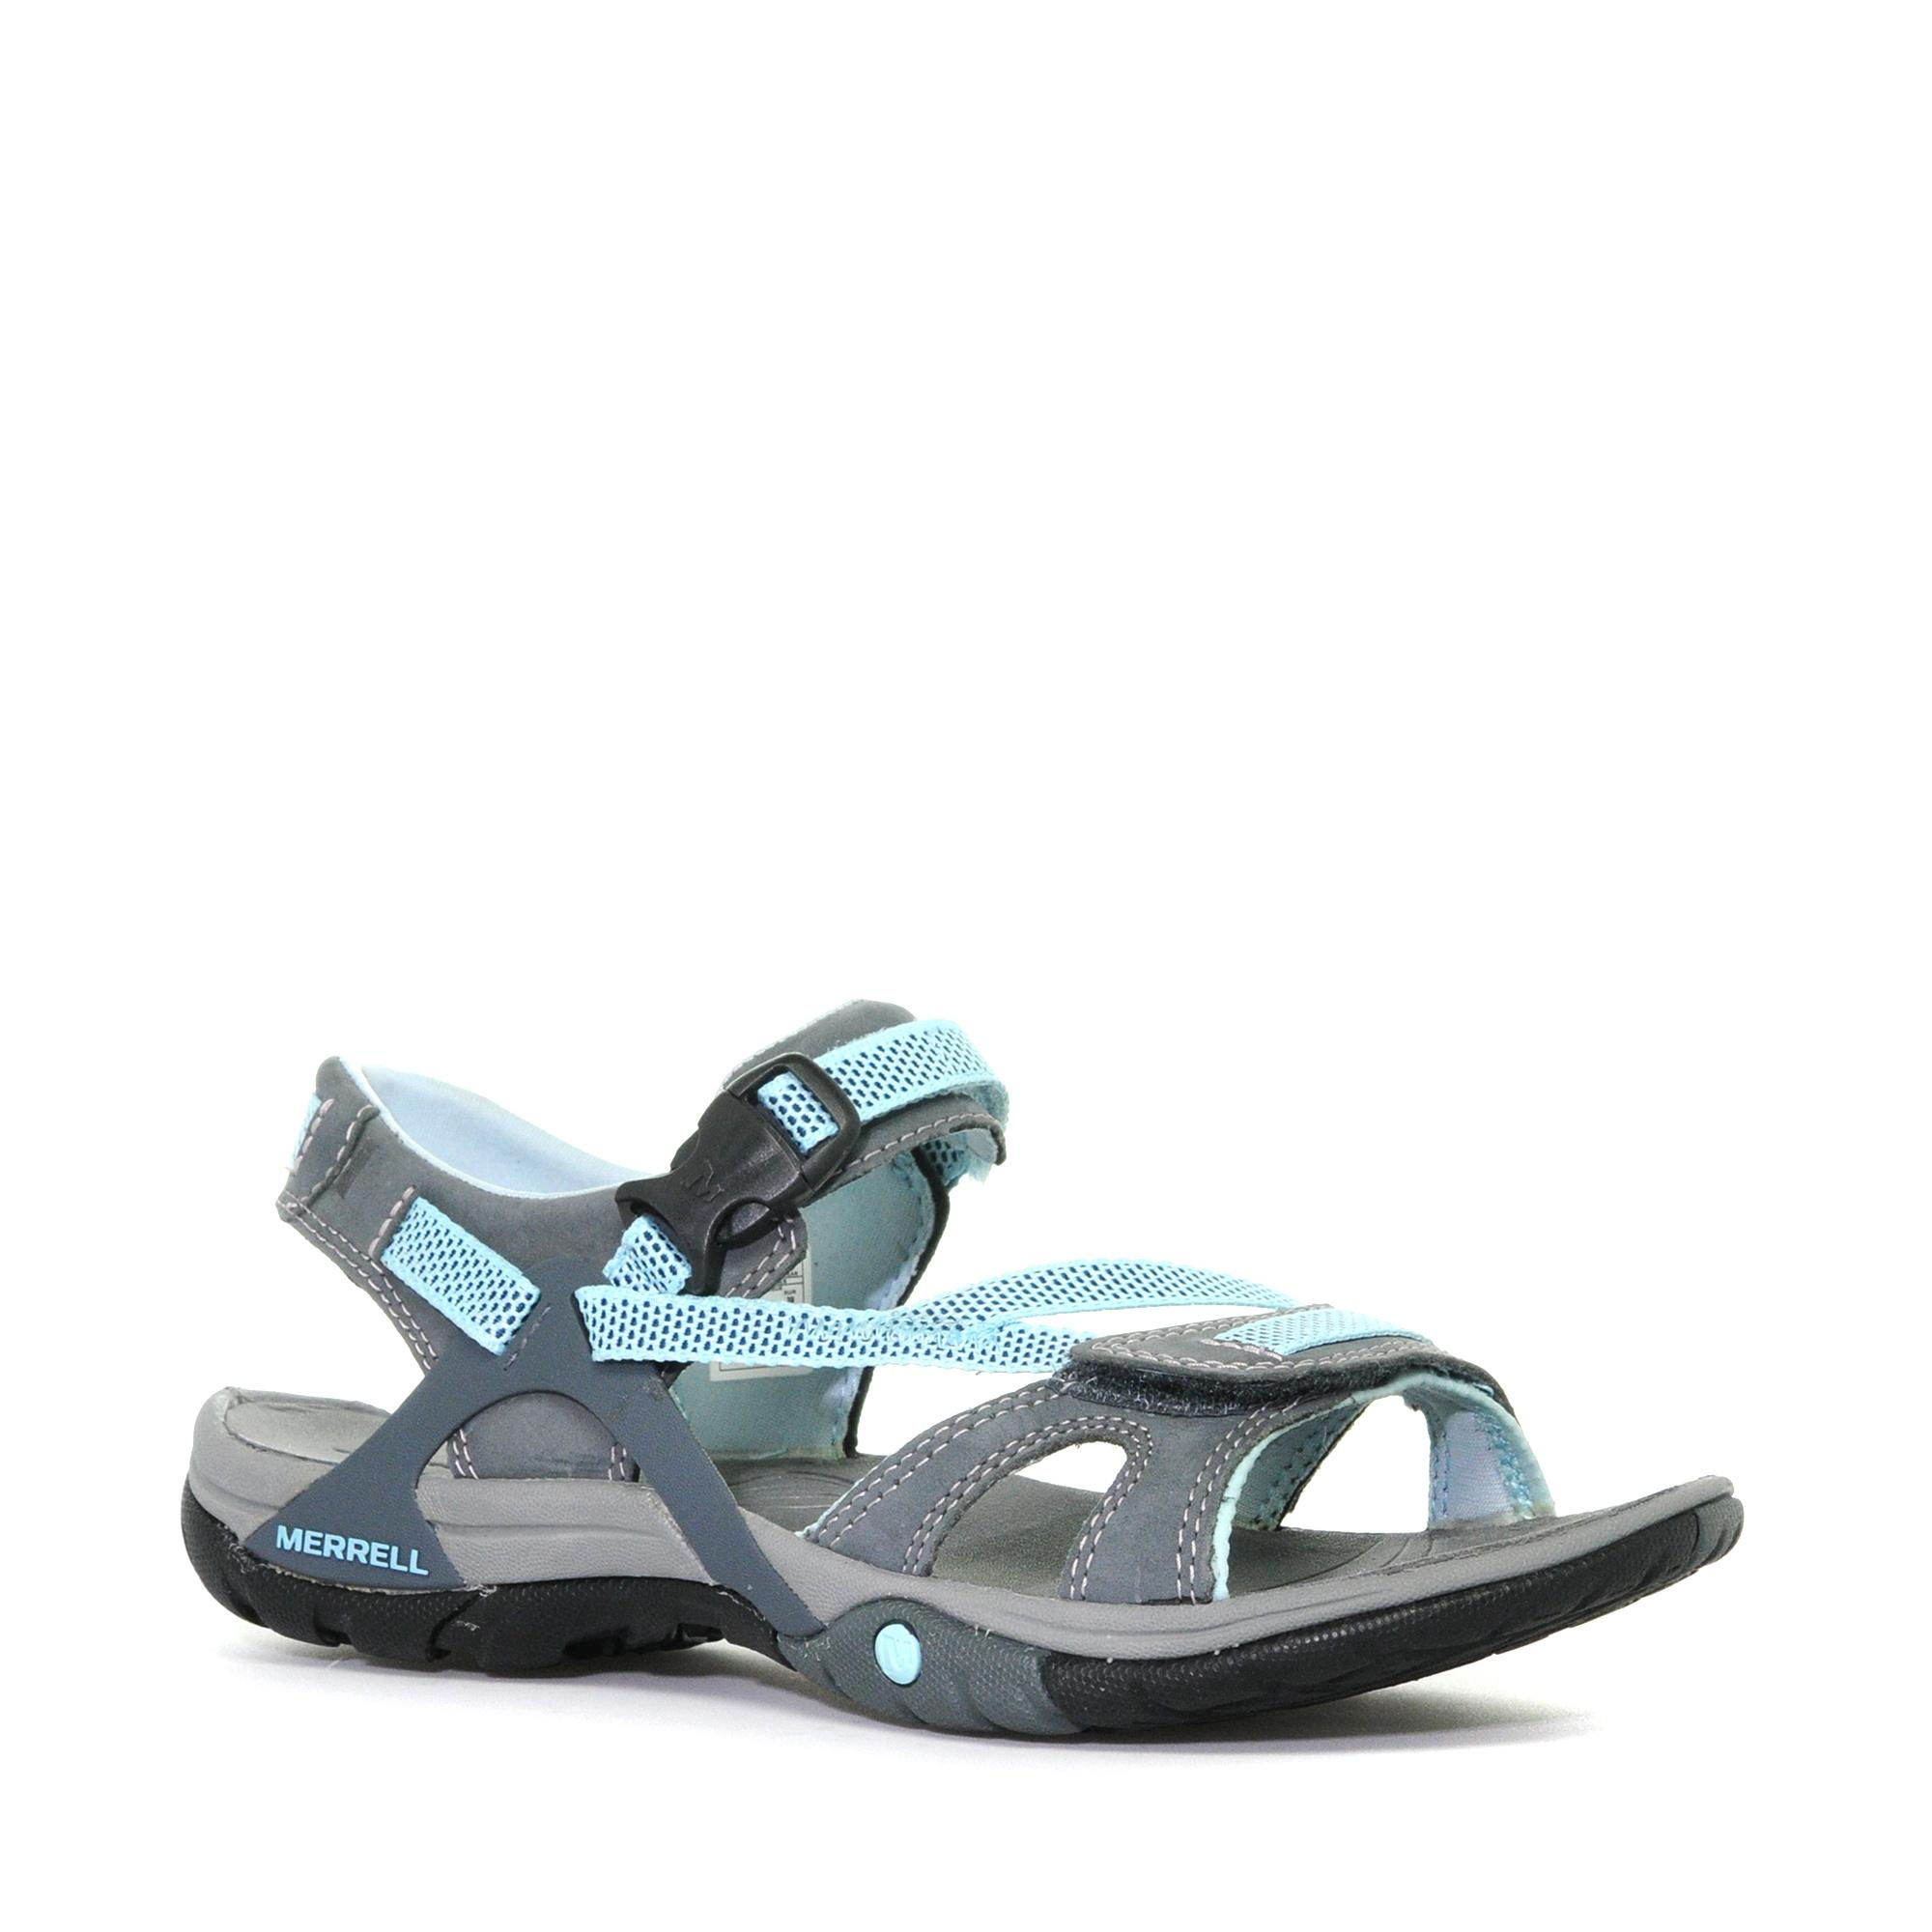 Merrell womens shoes hibiscus sandals